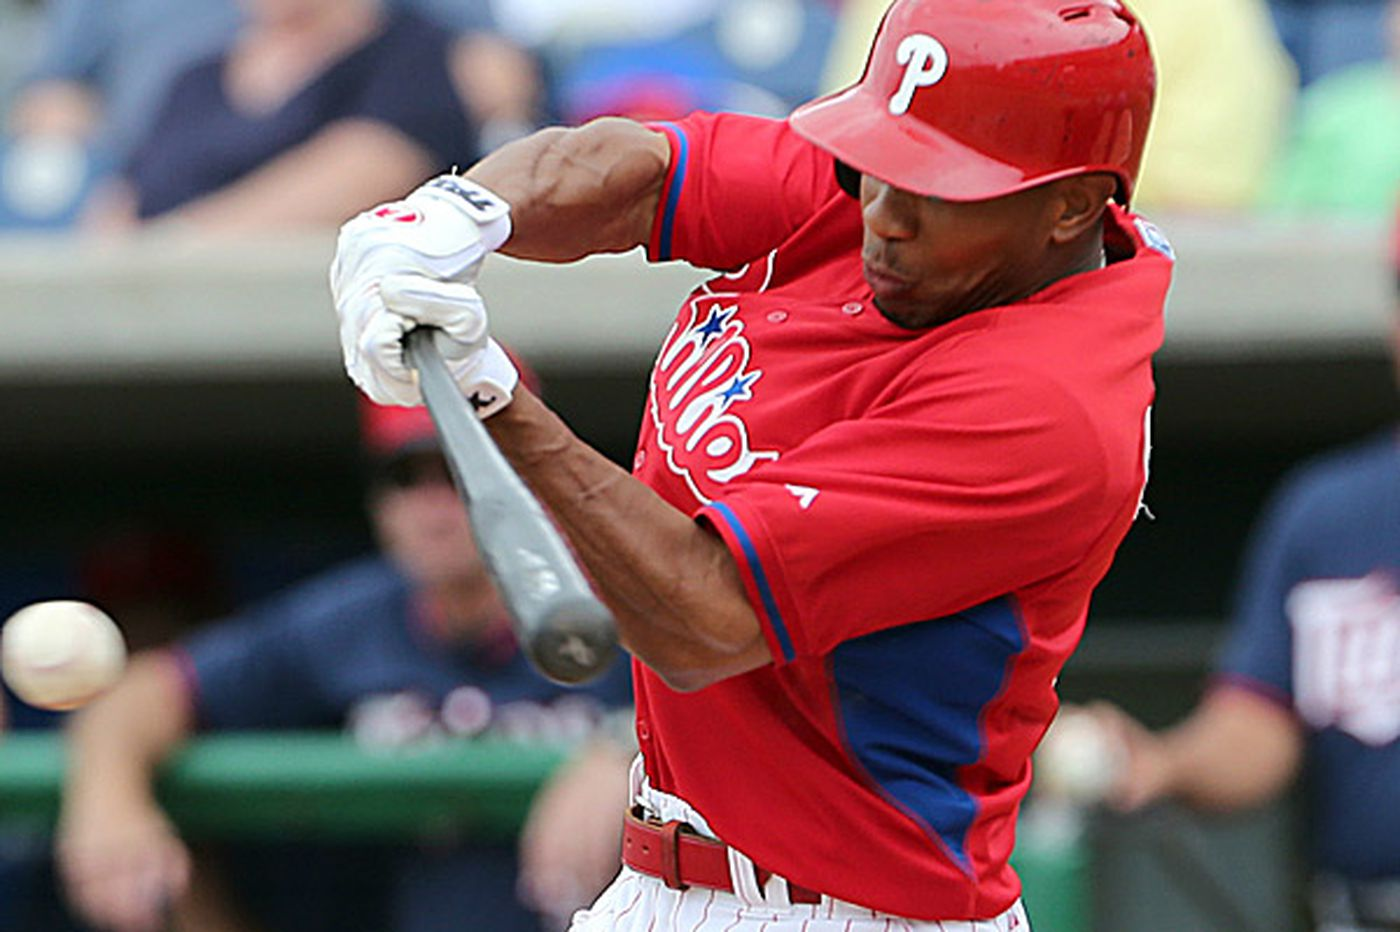 Phils' 'Happy' Revere can stand the pain